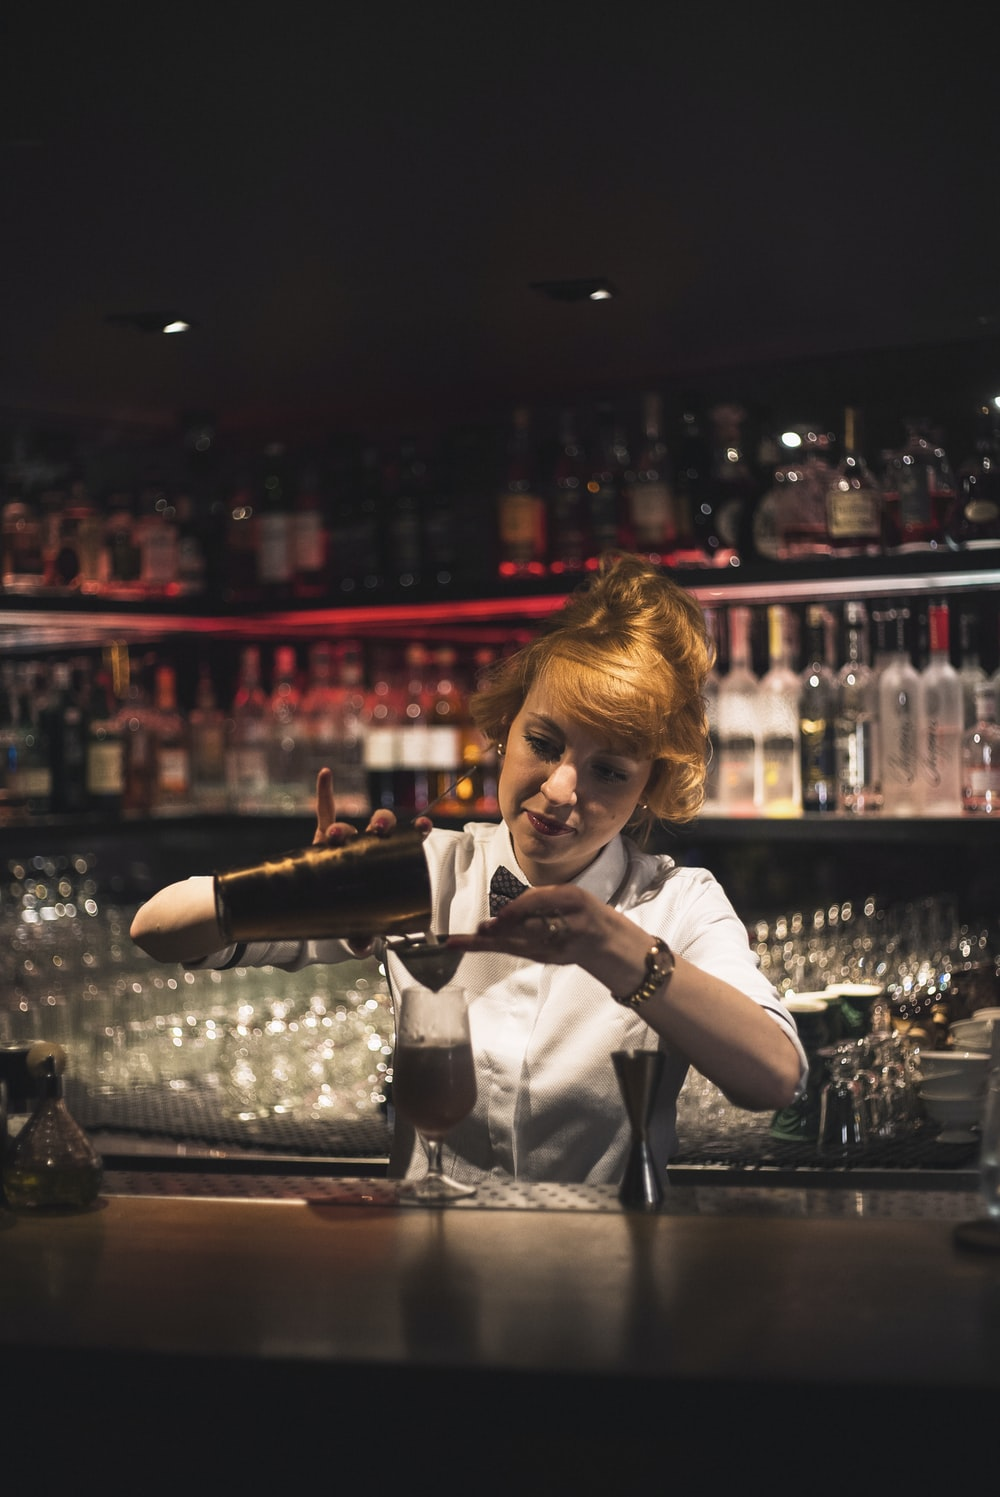 woman pouring bar shaker in clear glass stem glass on bar counter